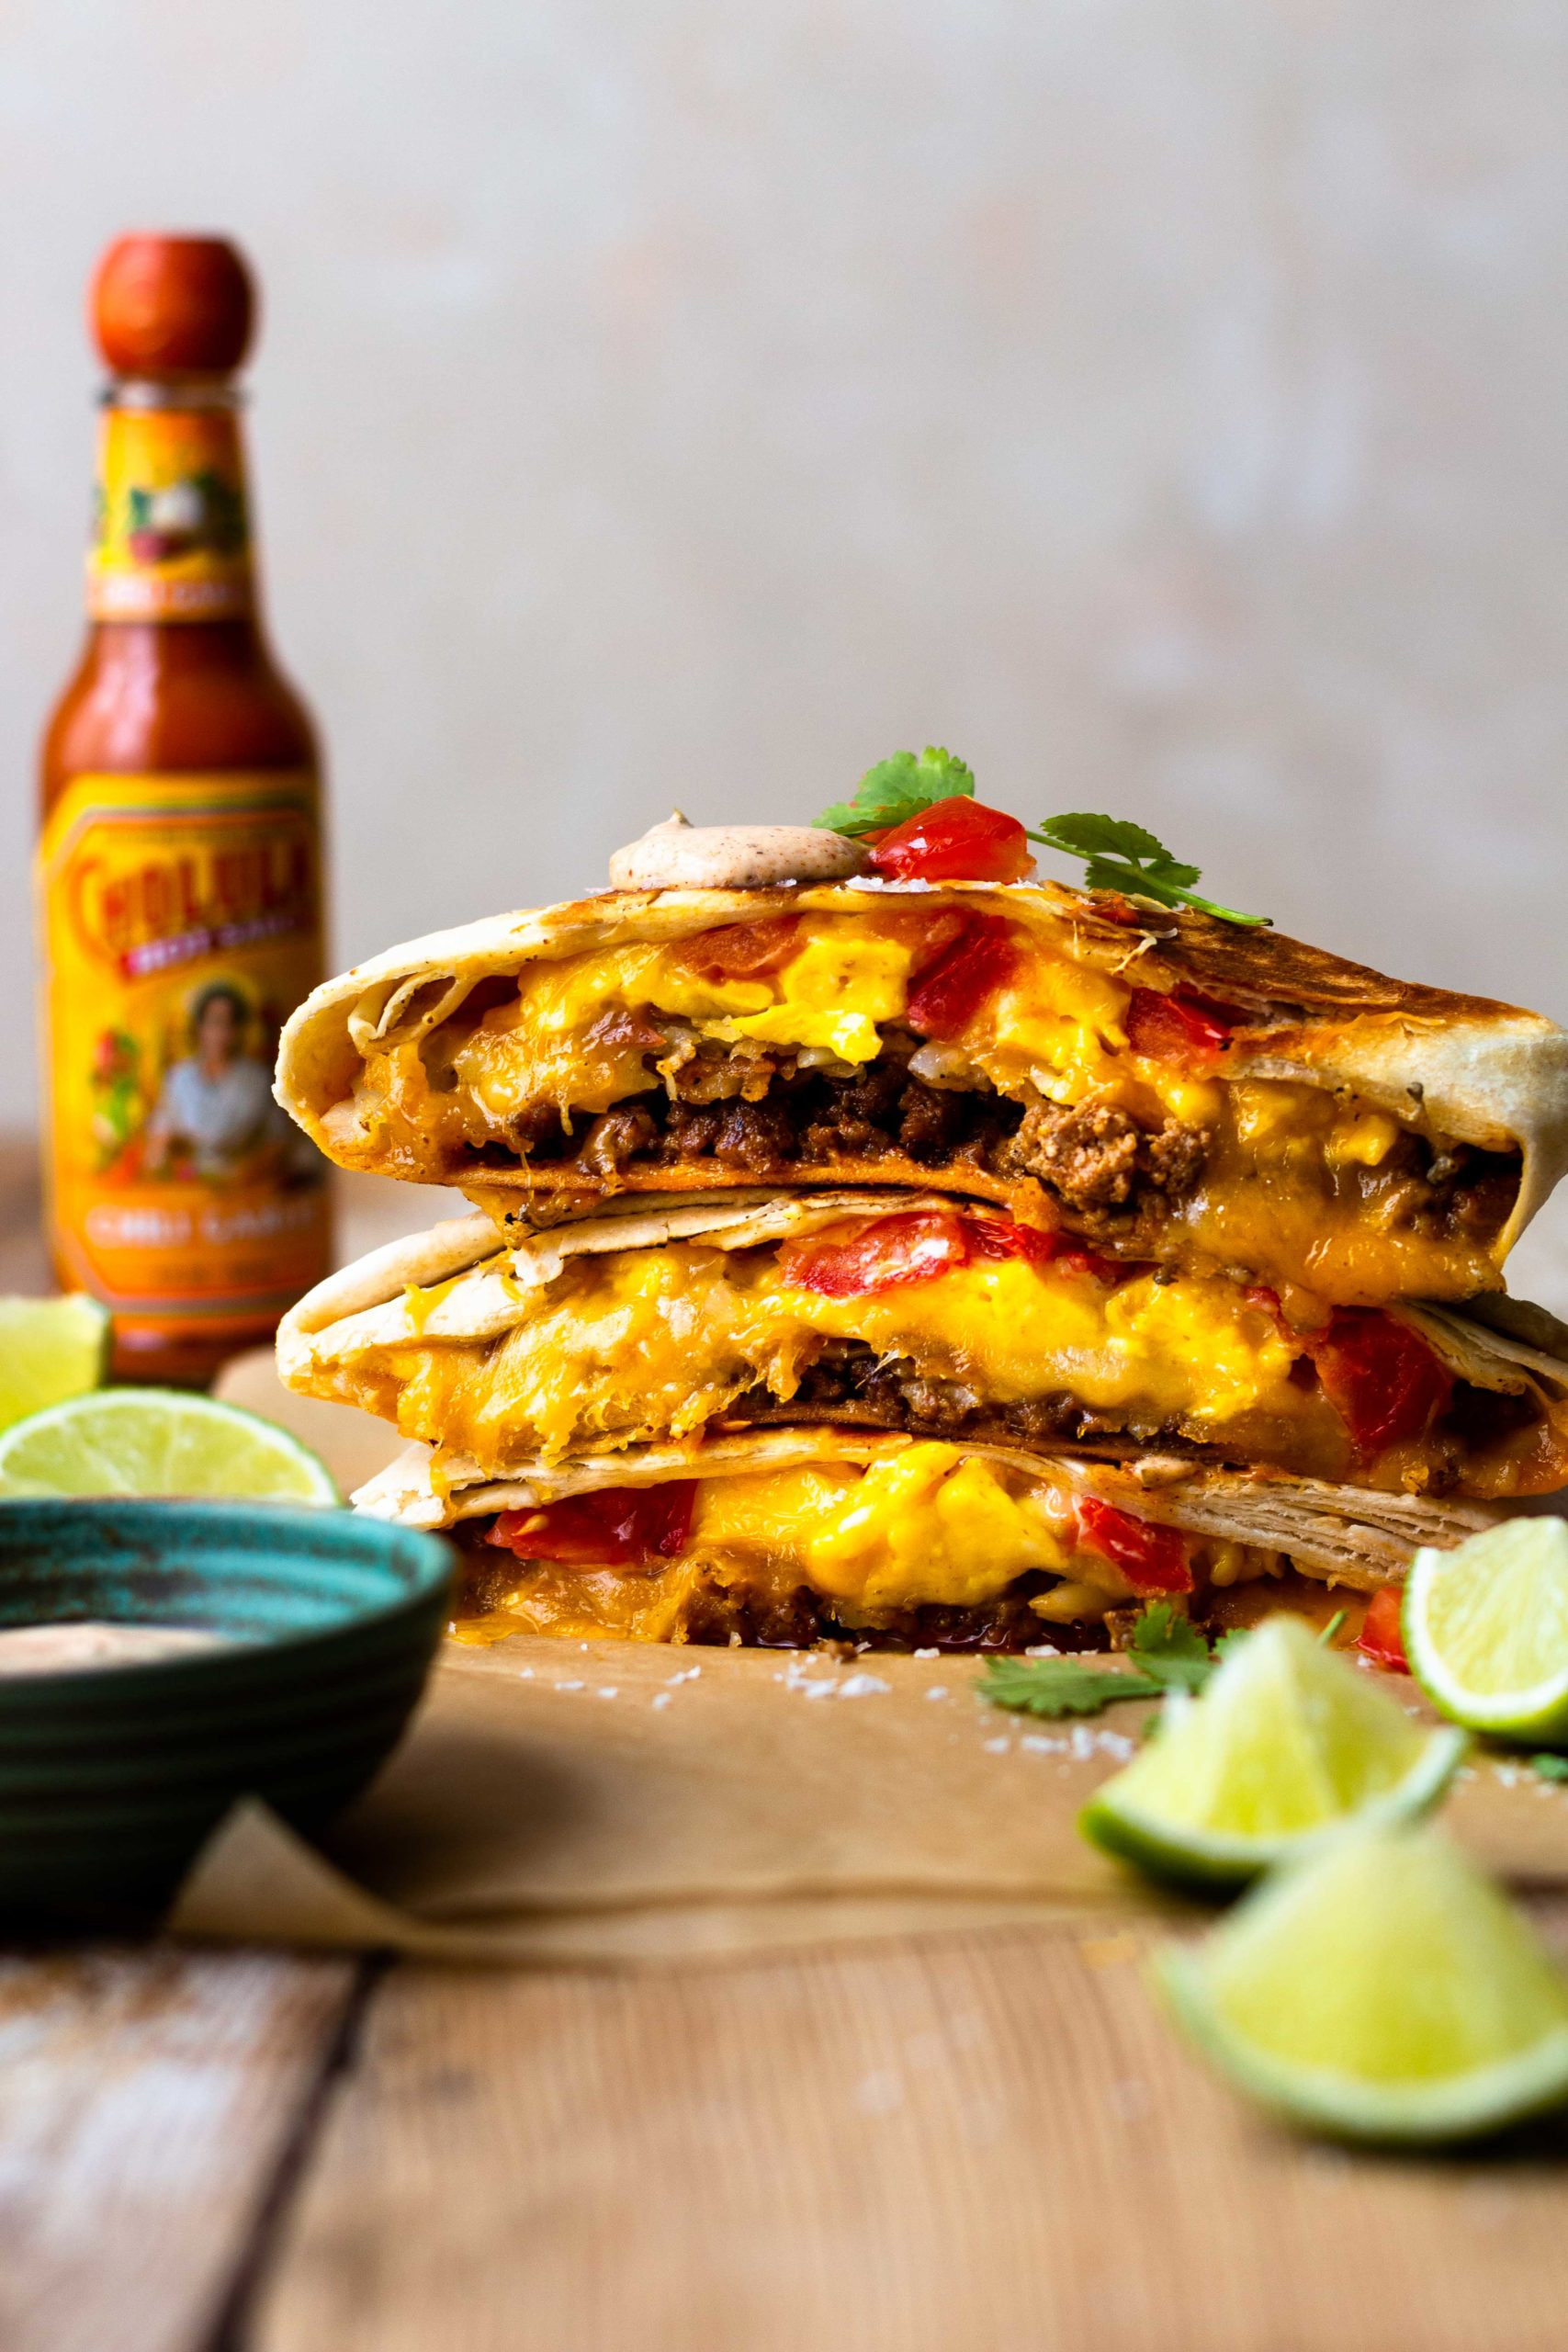 Flour tortilla stuffed with seasoned pork, crispy hash browns, fluffy scrambled eggs, lots of cheese, fresh tomatoes and the MOST delicious Creamy Jalapeño Sauce that tastes just like Taco Bell quesadilla sauce!! Grill the Breakfast Crunchwrap to melty, golden perfection then devour.